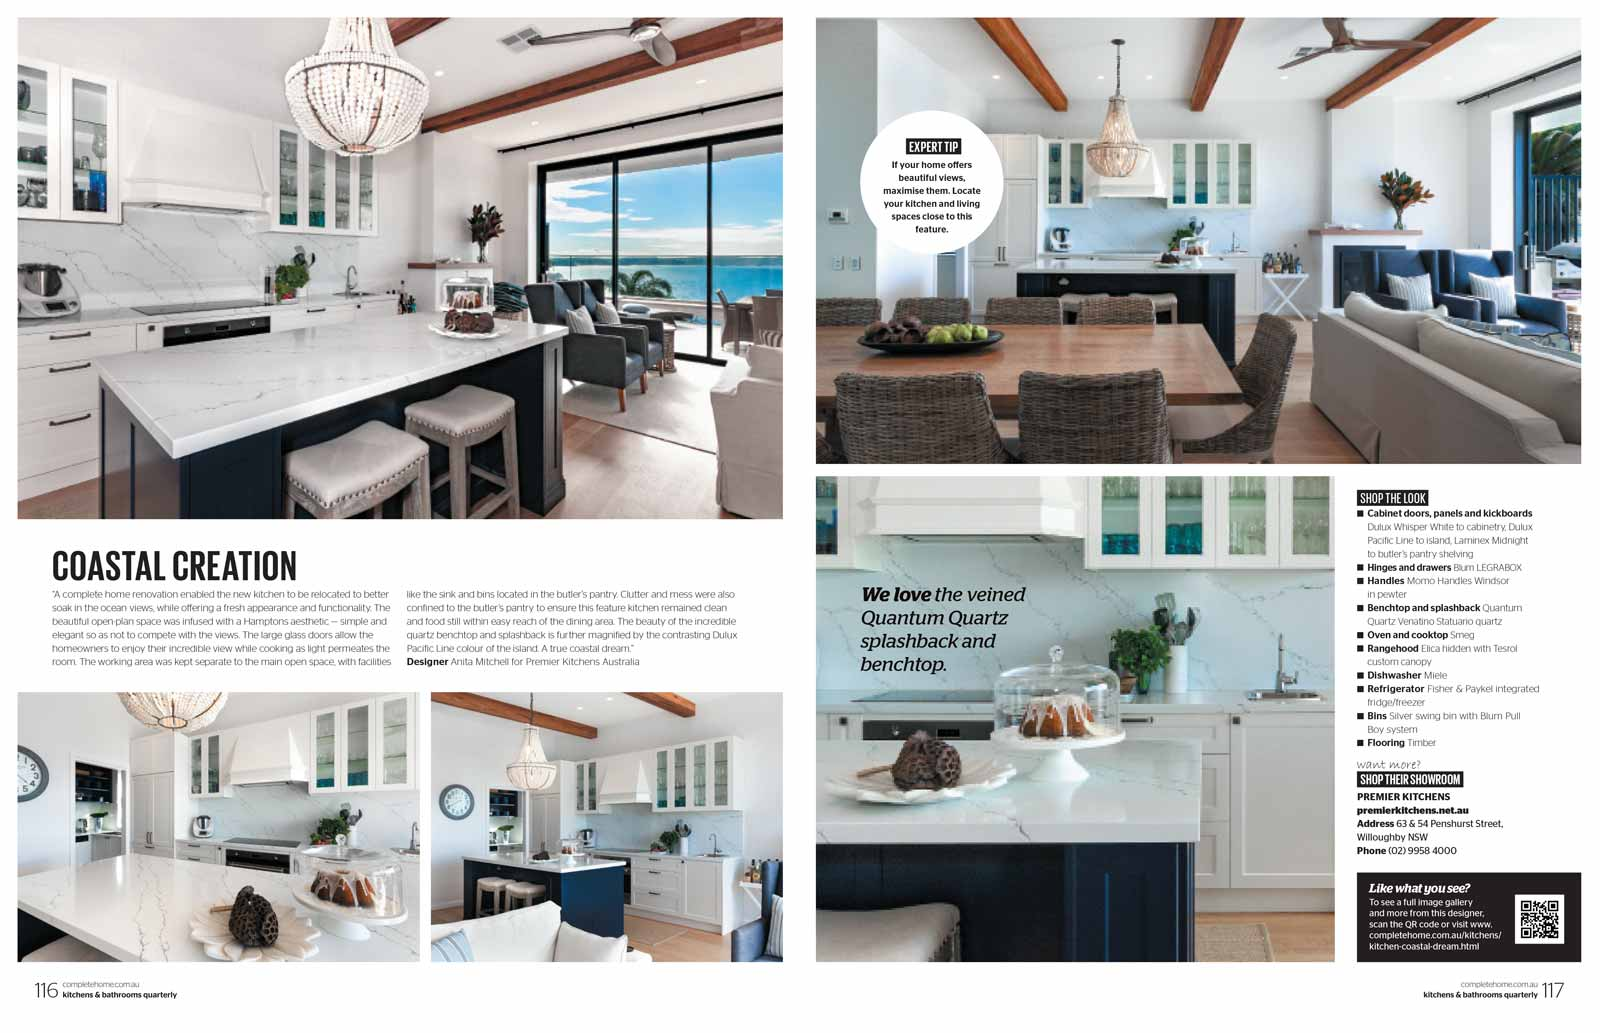 Kitchens and Bathrooms Quarterly magazine article featuring Premier Kitchens Australia Palm Beach kitchen design